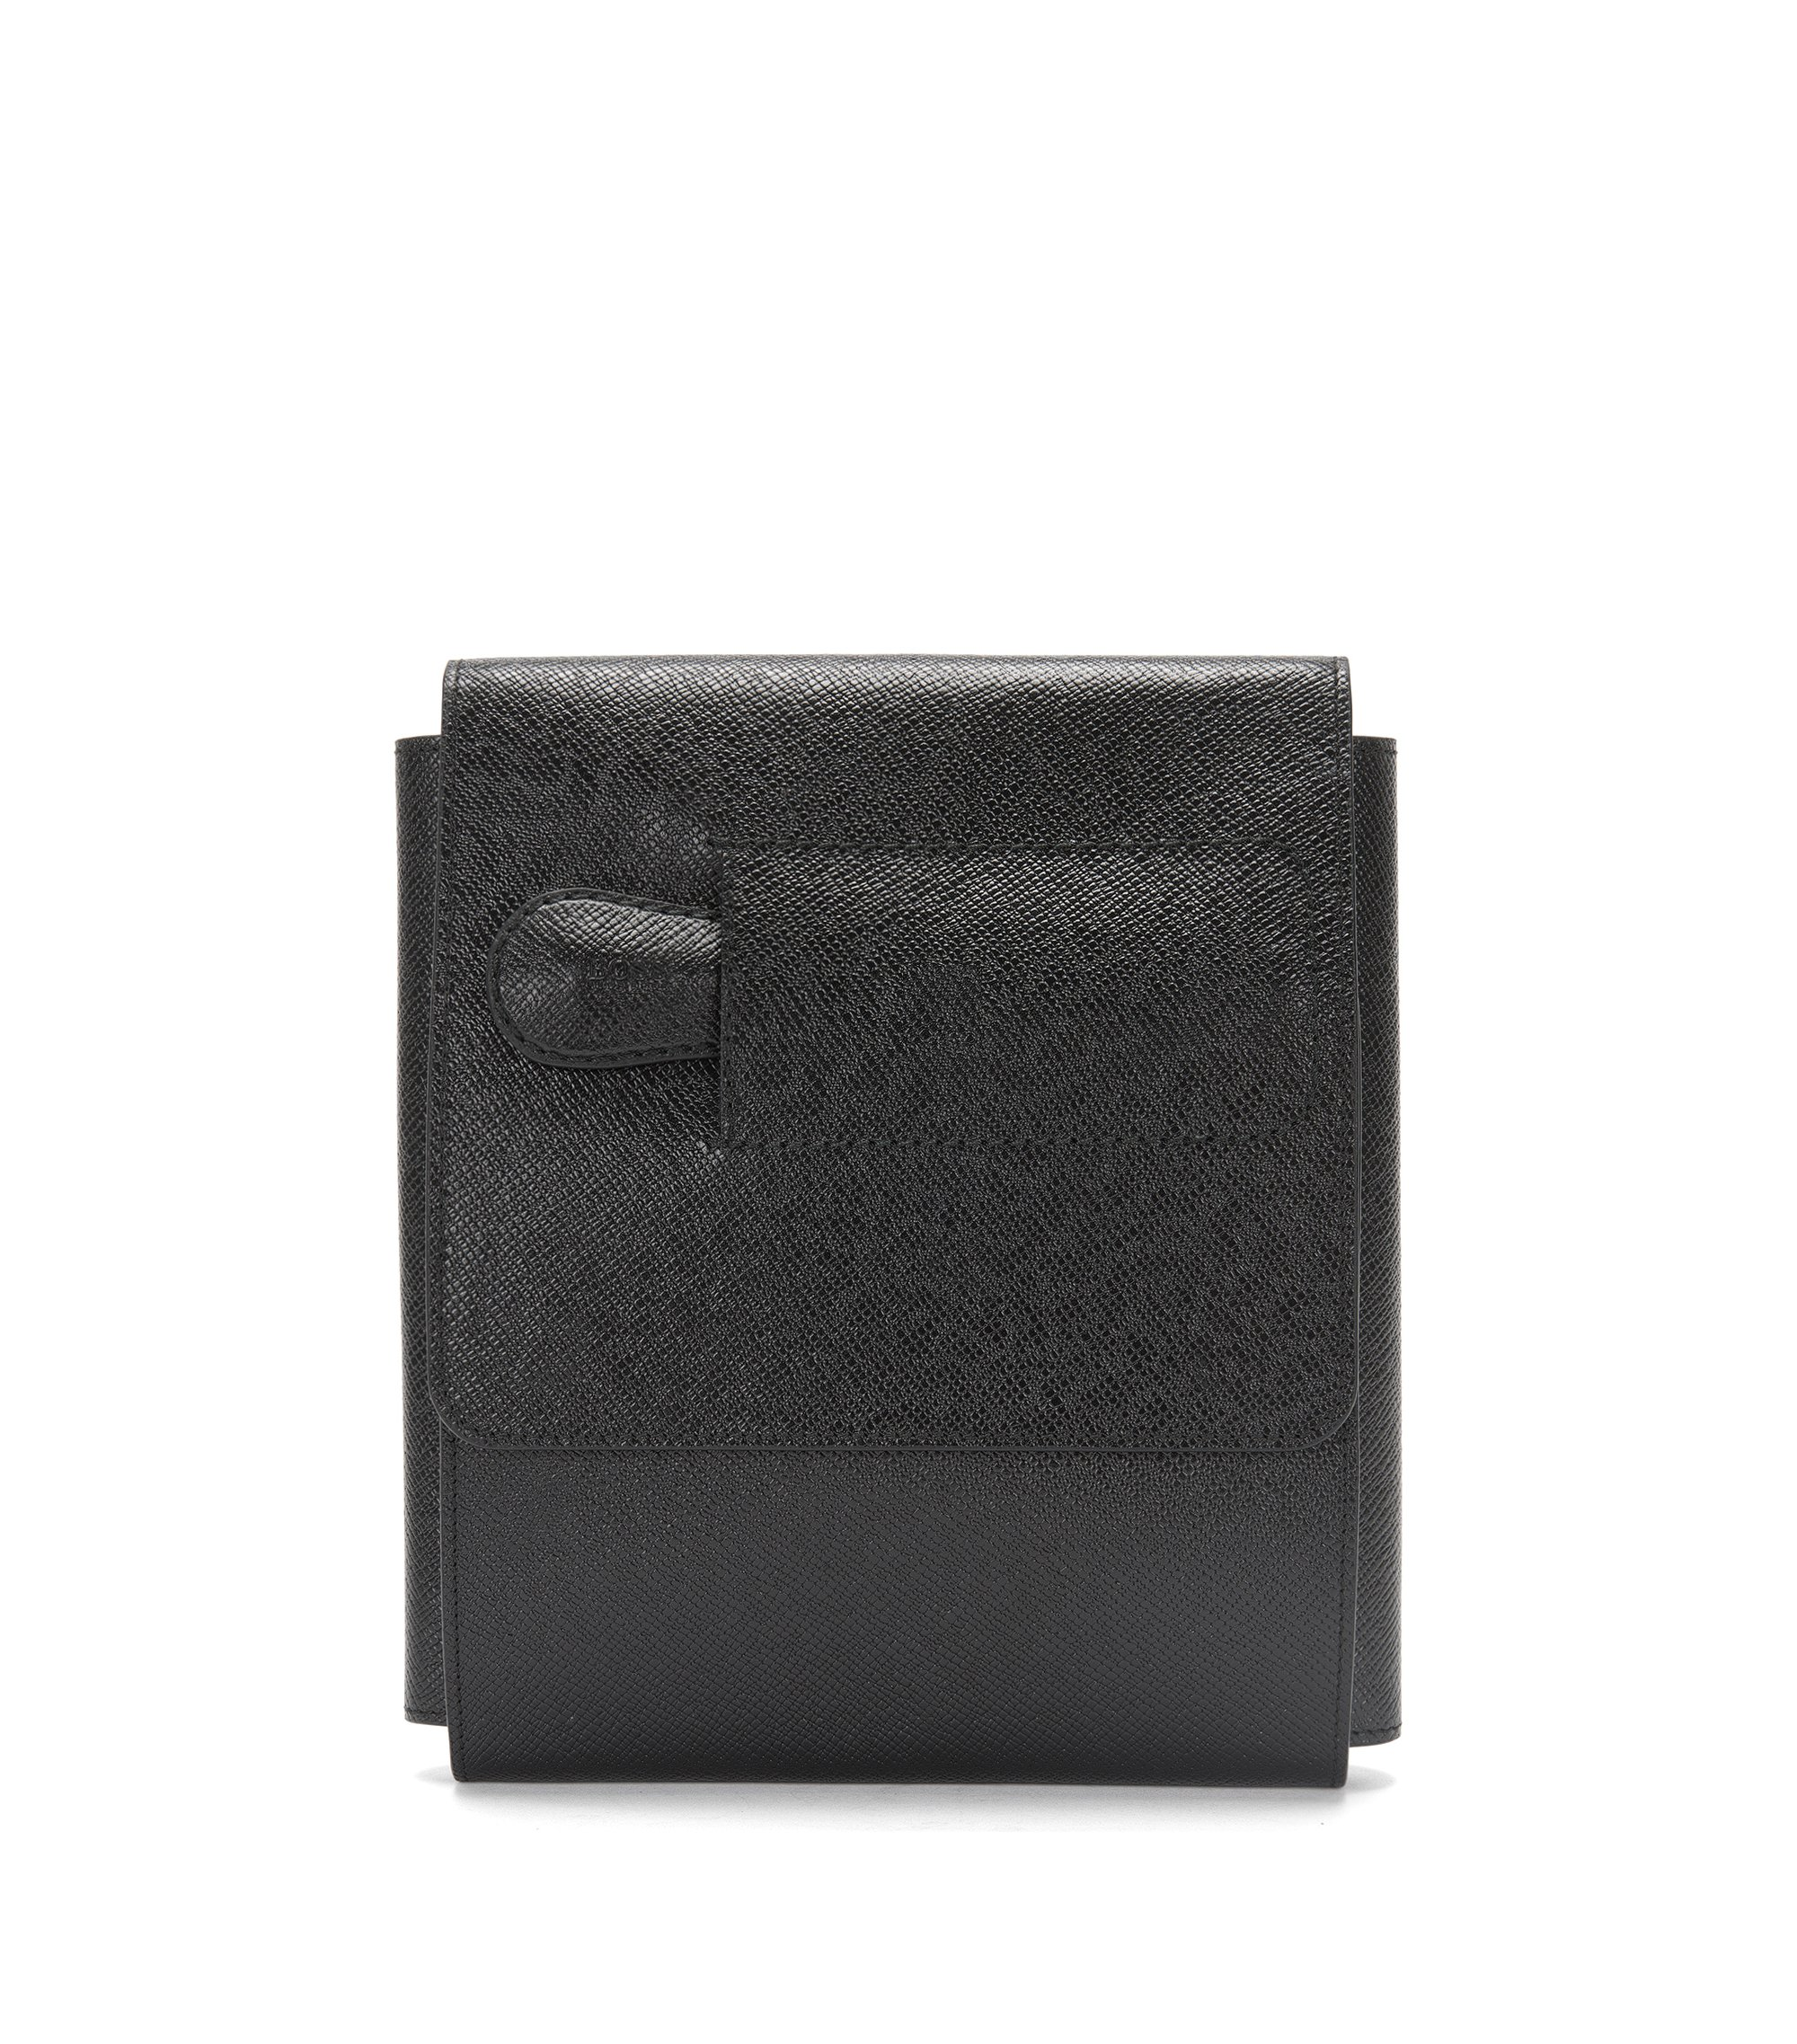 Shoe-care organiser in palmellato calf leather, Black